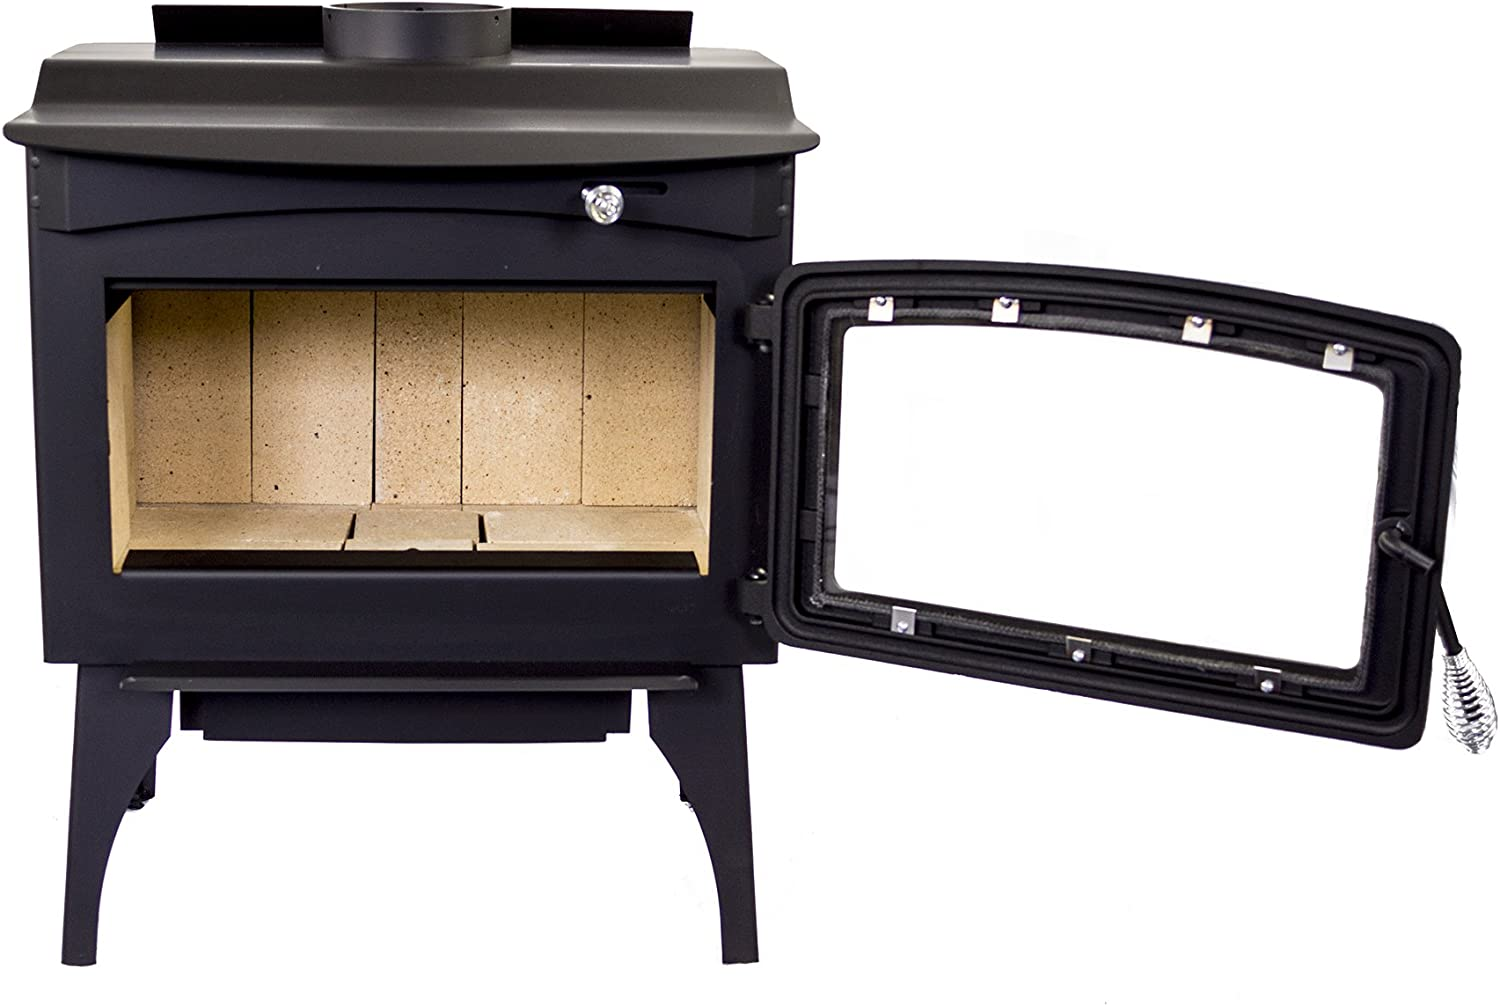 Wood Small Pellet Stove Stoves For Sale Fireplace Best